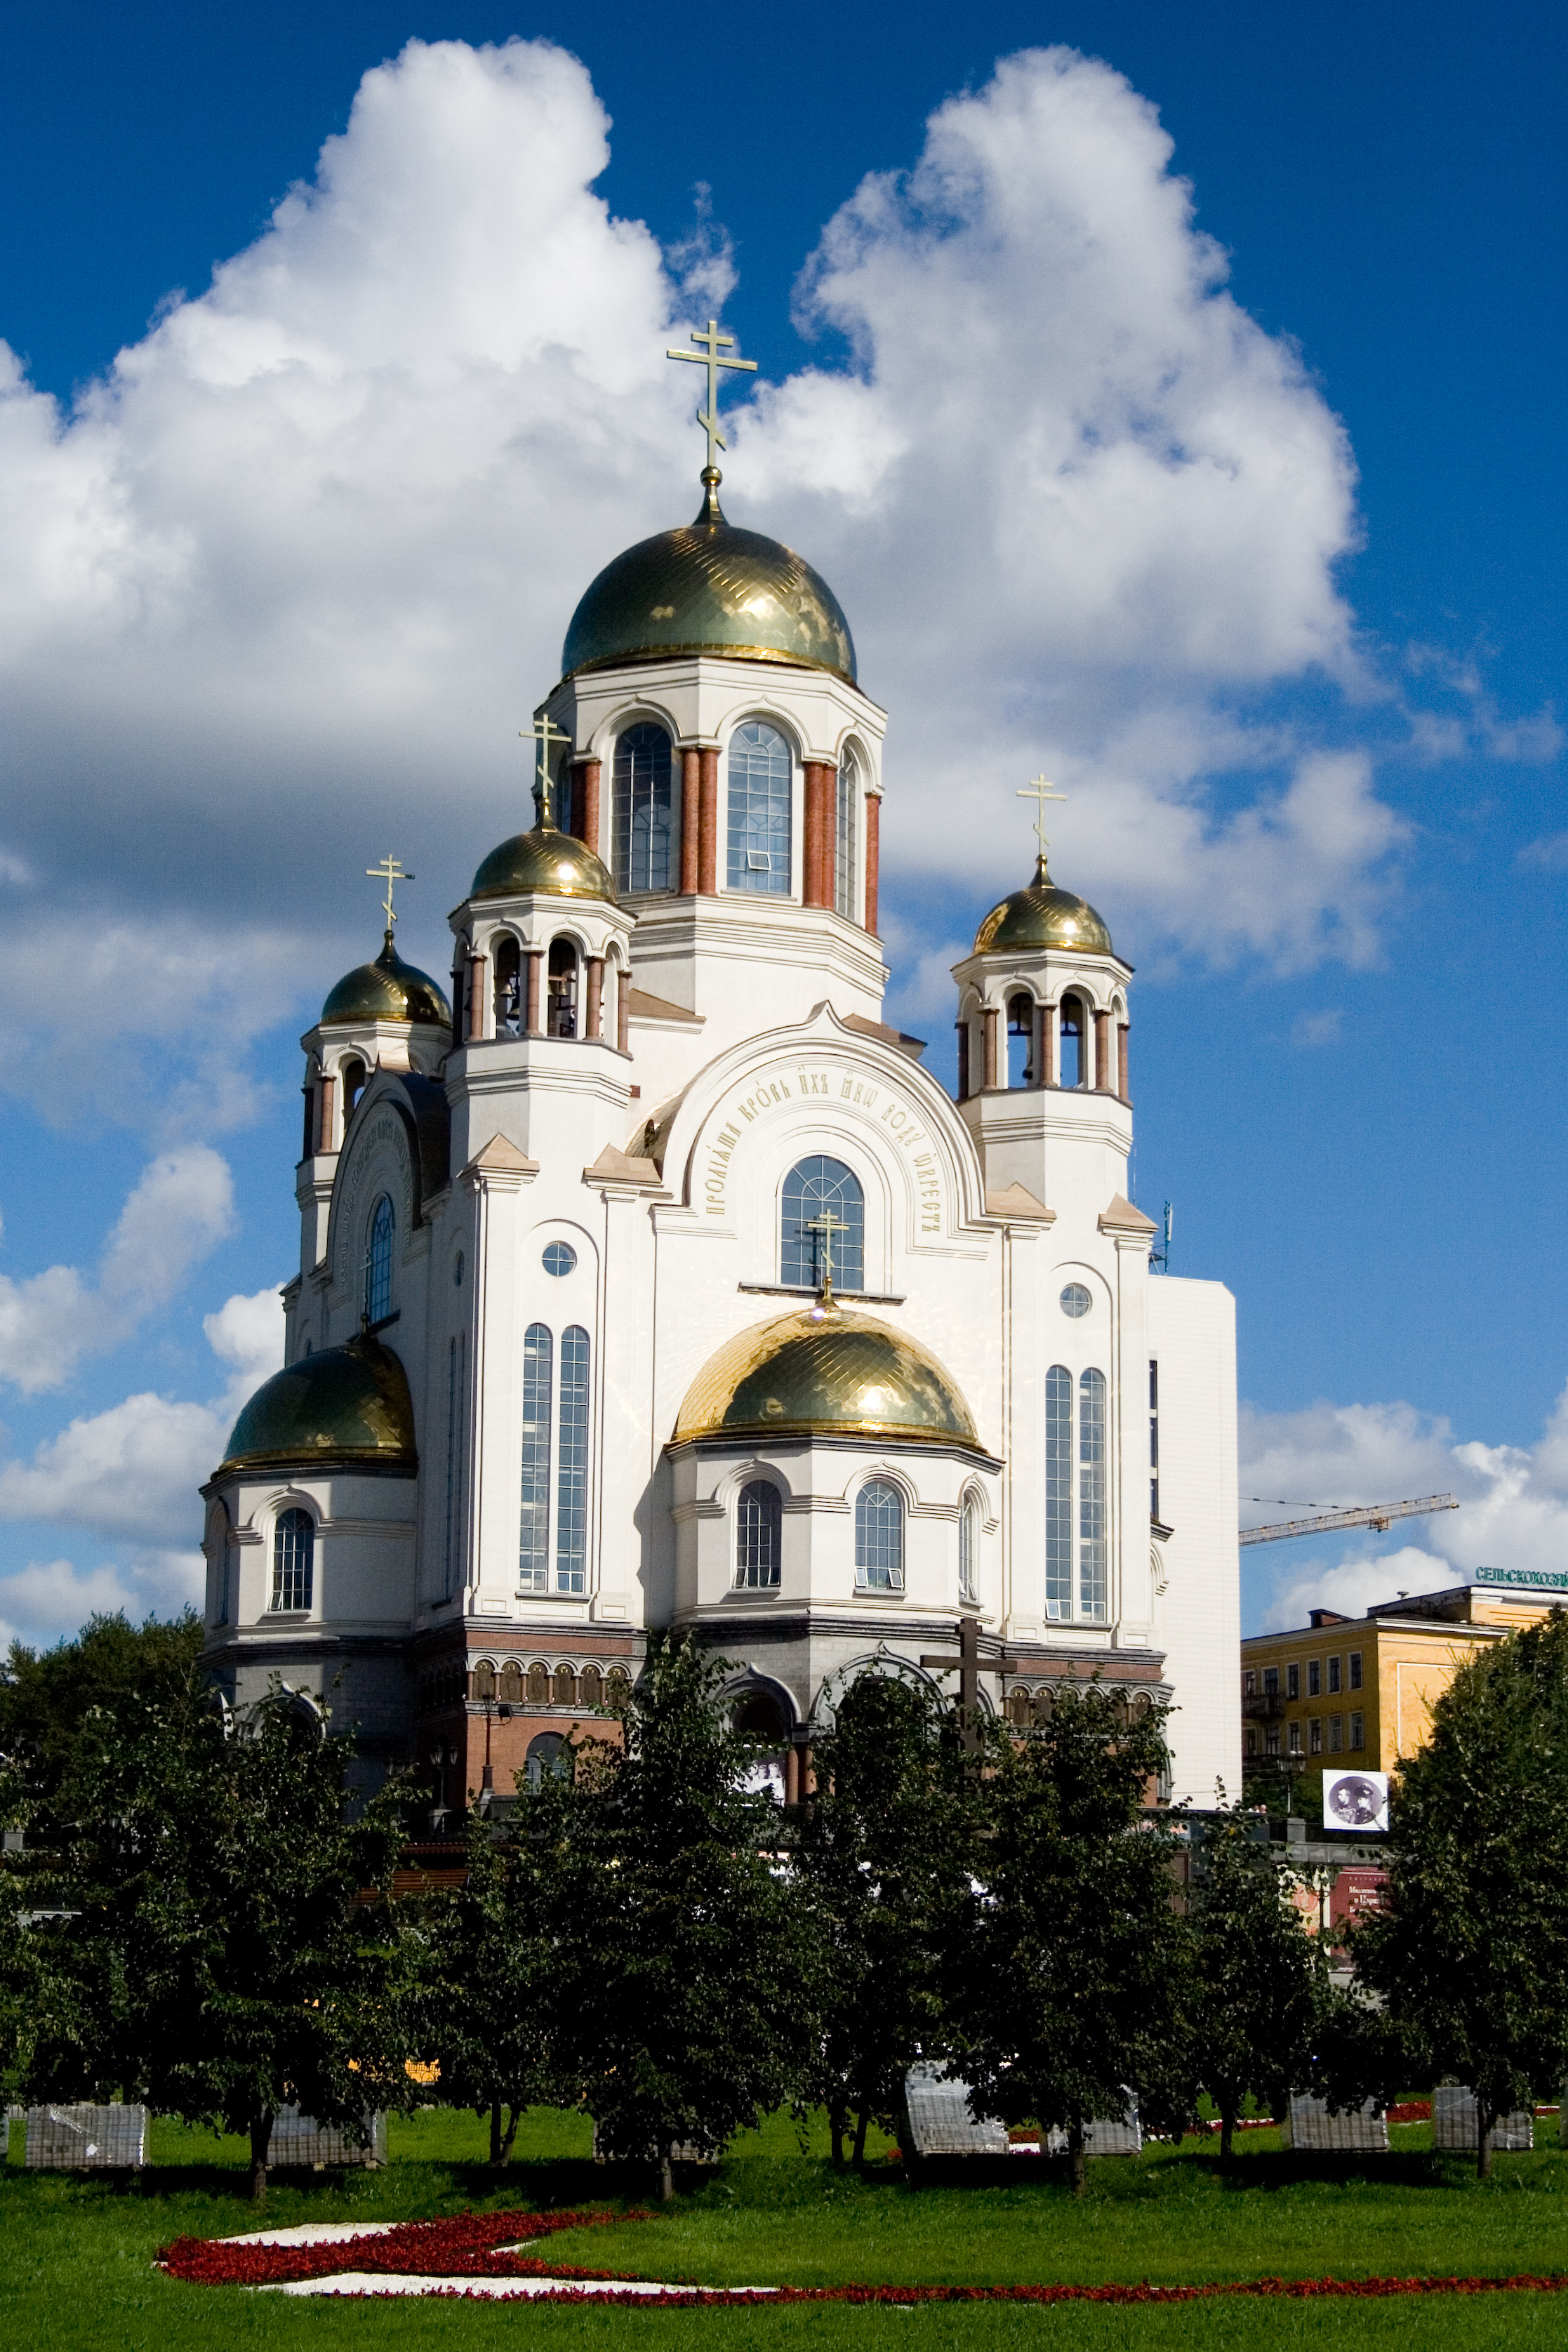 https://upload.wikimedia.org/wikipedia/commons/f/f1/Yekaterinburg_cathedral_on_the_blood_2007.jpg